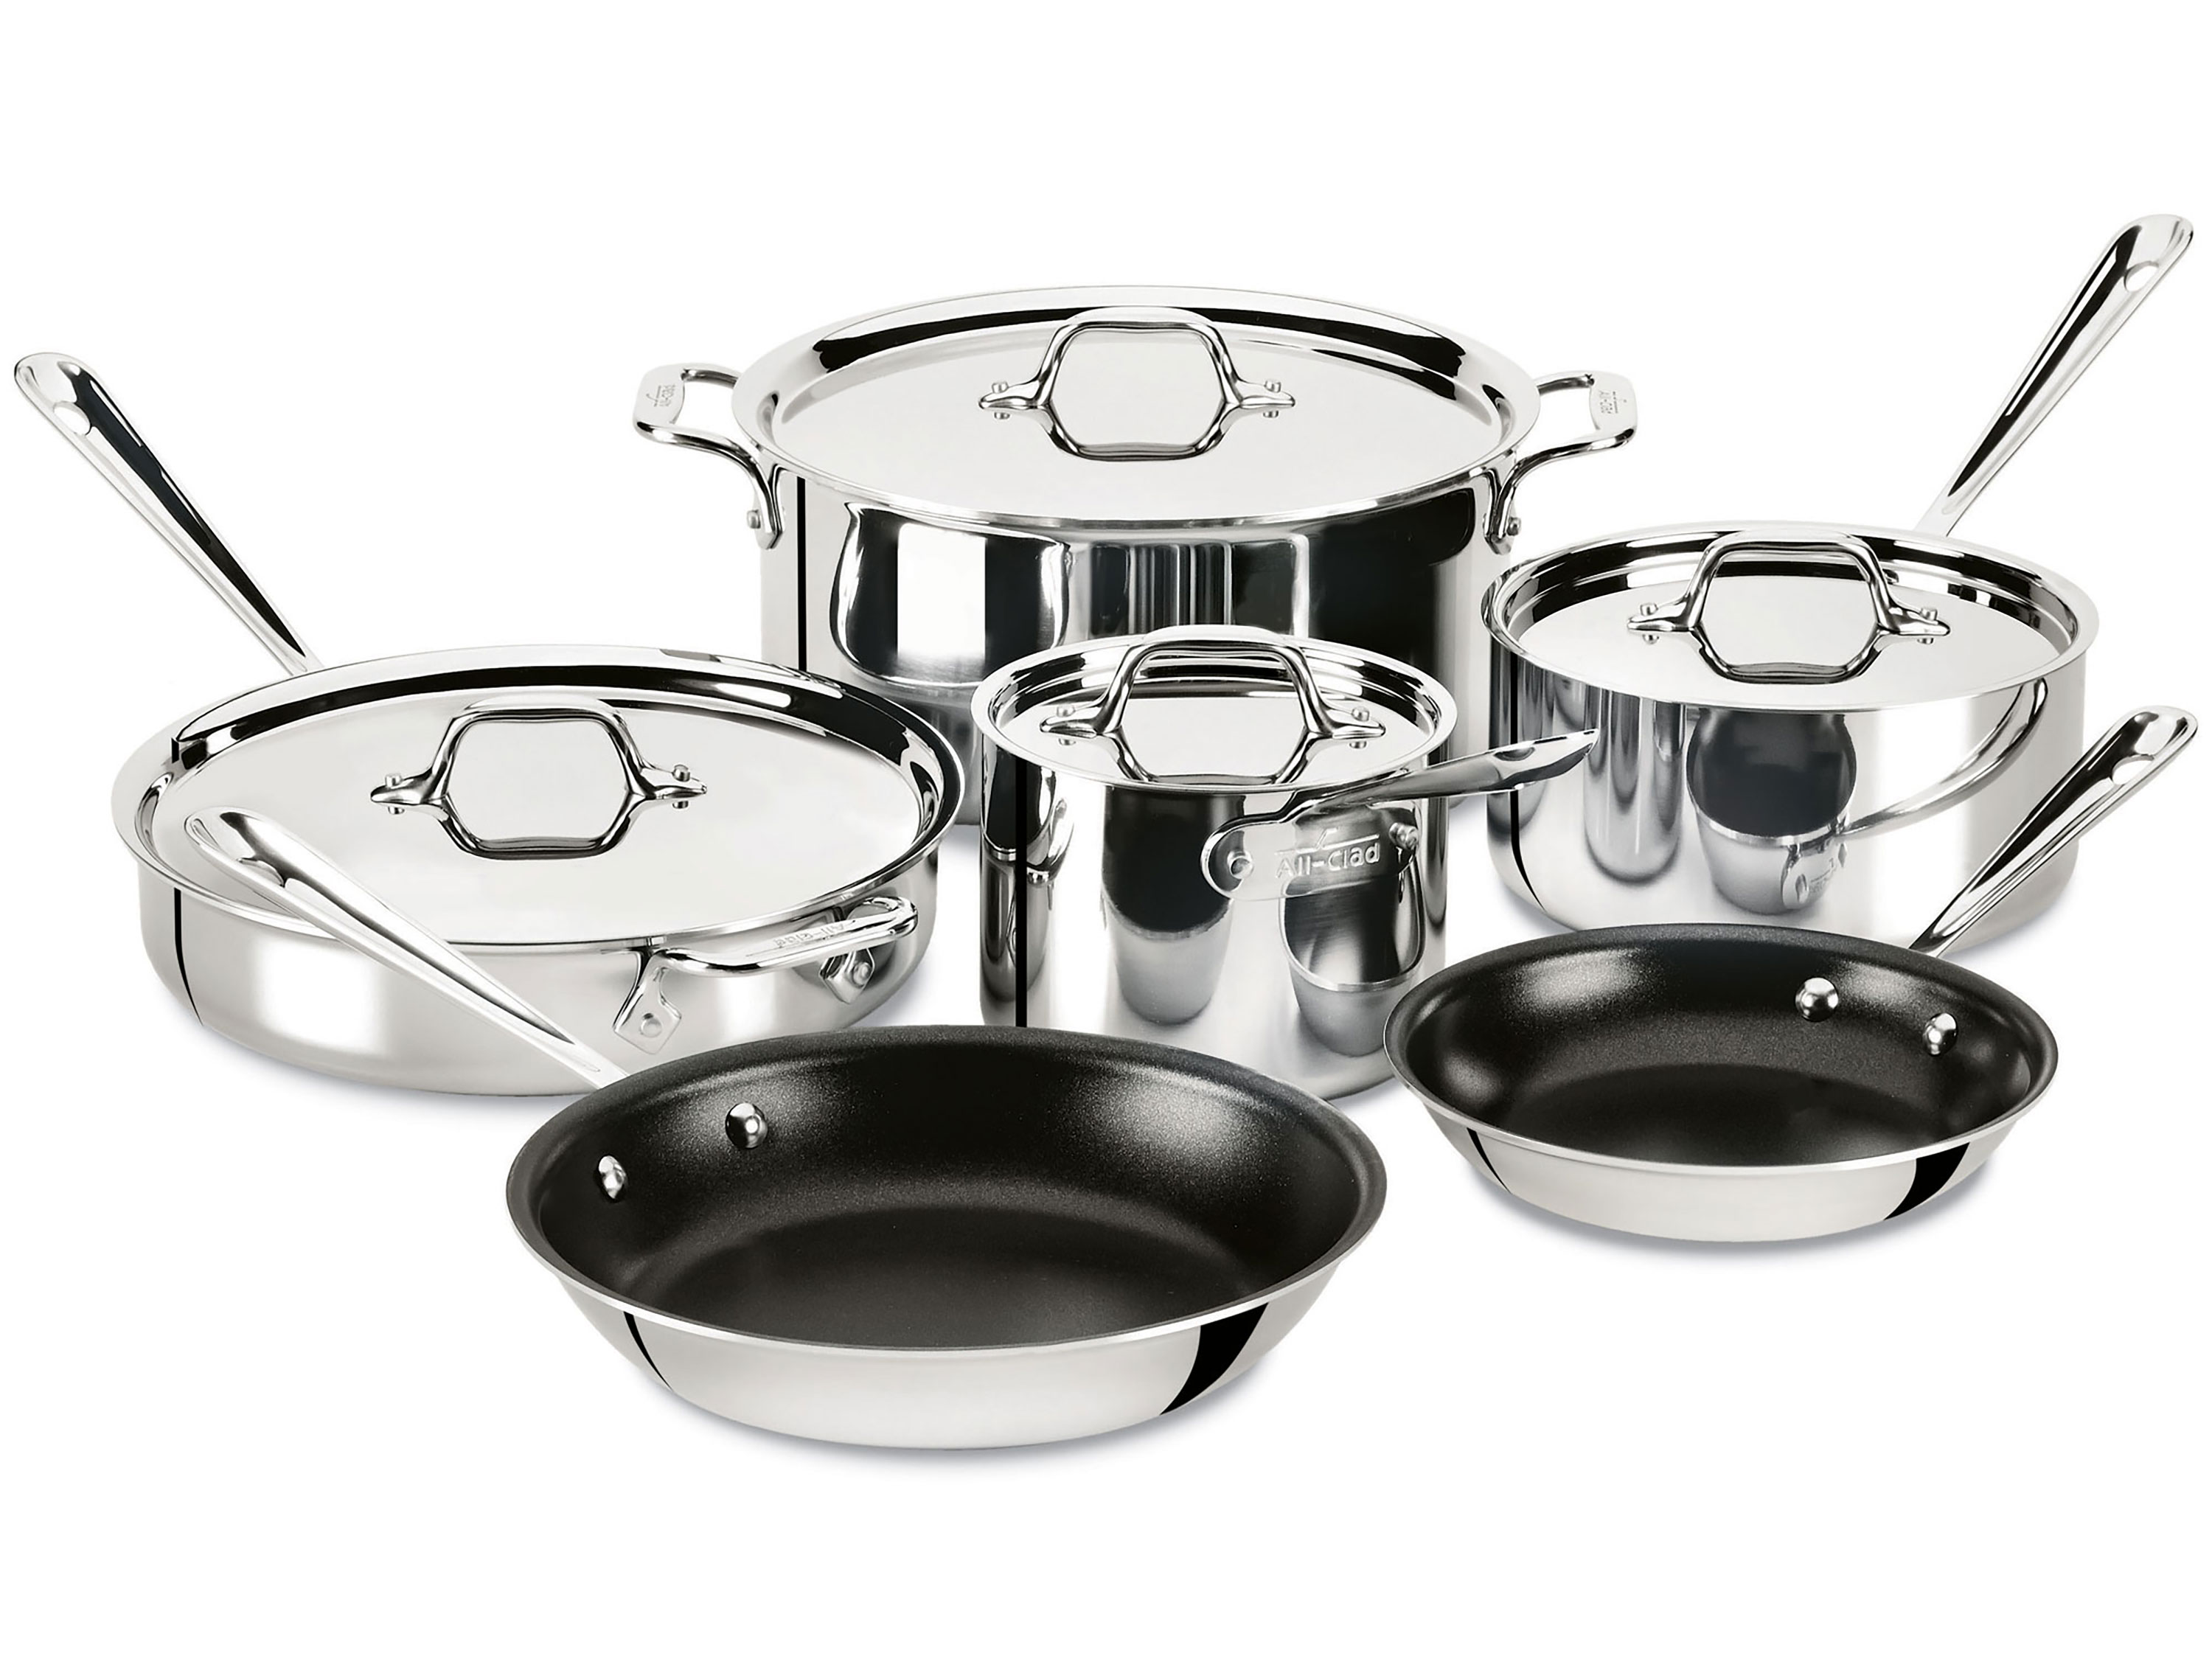 All clad stainless steel cookware sets - All Clad Stainless Steel Cookware Sets 56